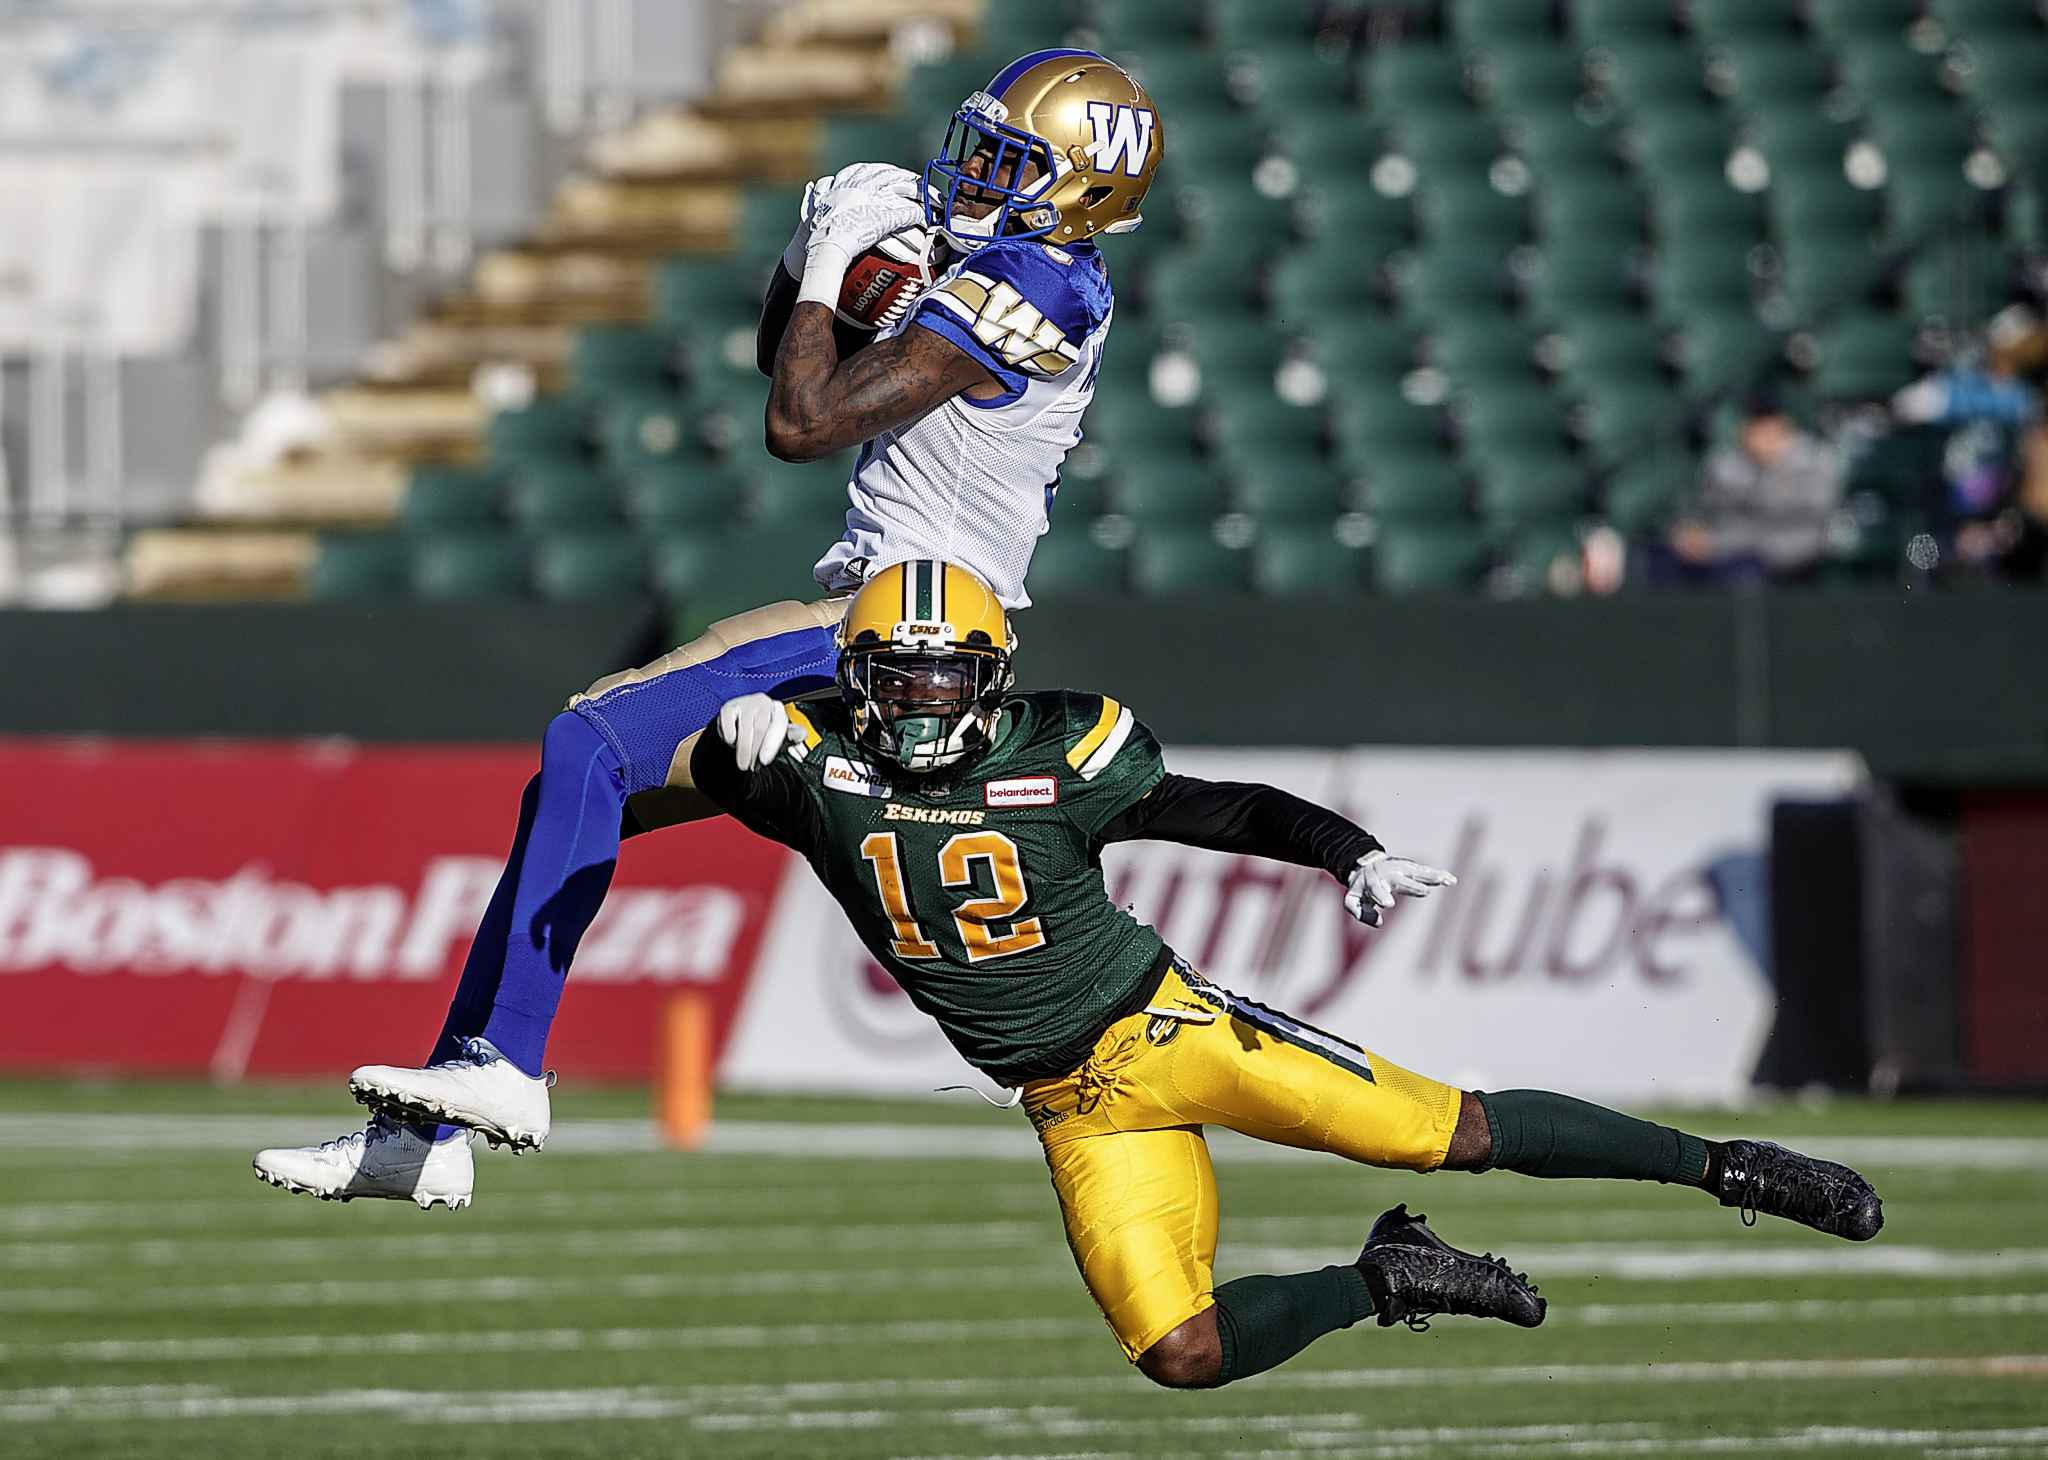 JASON FRANSON / THE CANADIAN PRESS</p><p>Winnipeg Blue Bombers Corey Washington (6) makes the catch as Edmonton Eskimos Forrest Hightower (12) tries to stop him during first half CFL action in Edmonton, Alta., on Saturday November 3, 2018.</p>